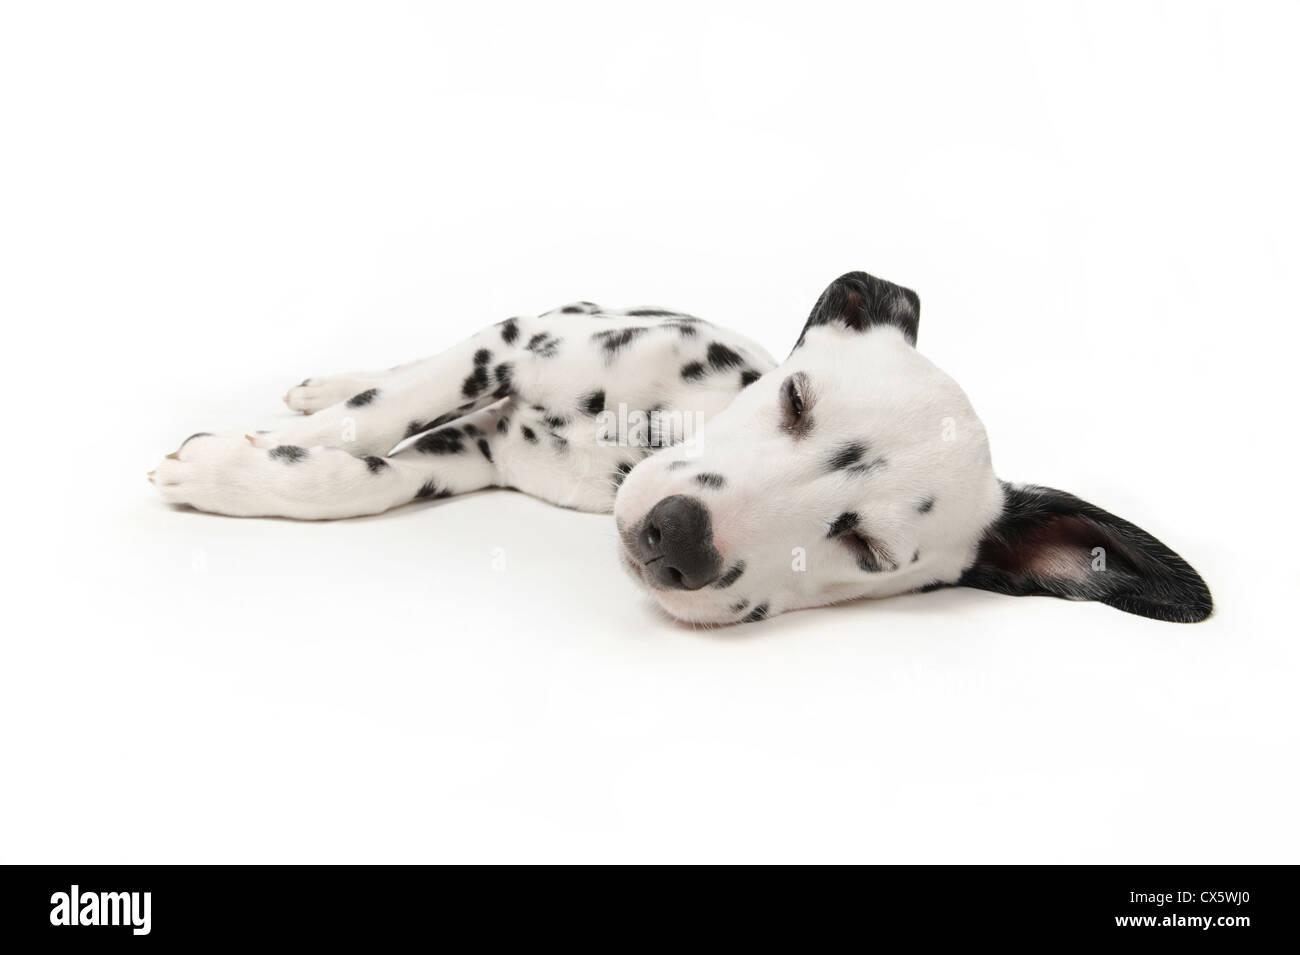 Dalmatian puppy lying down sleeping, studio shot with white background - Stock Image